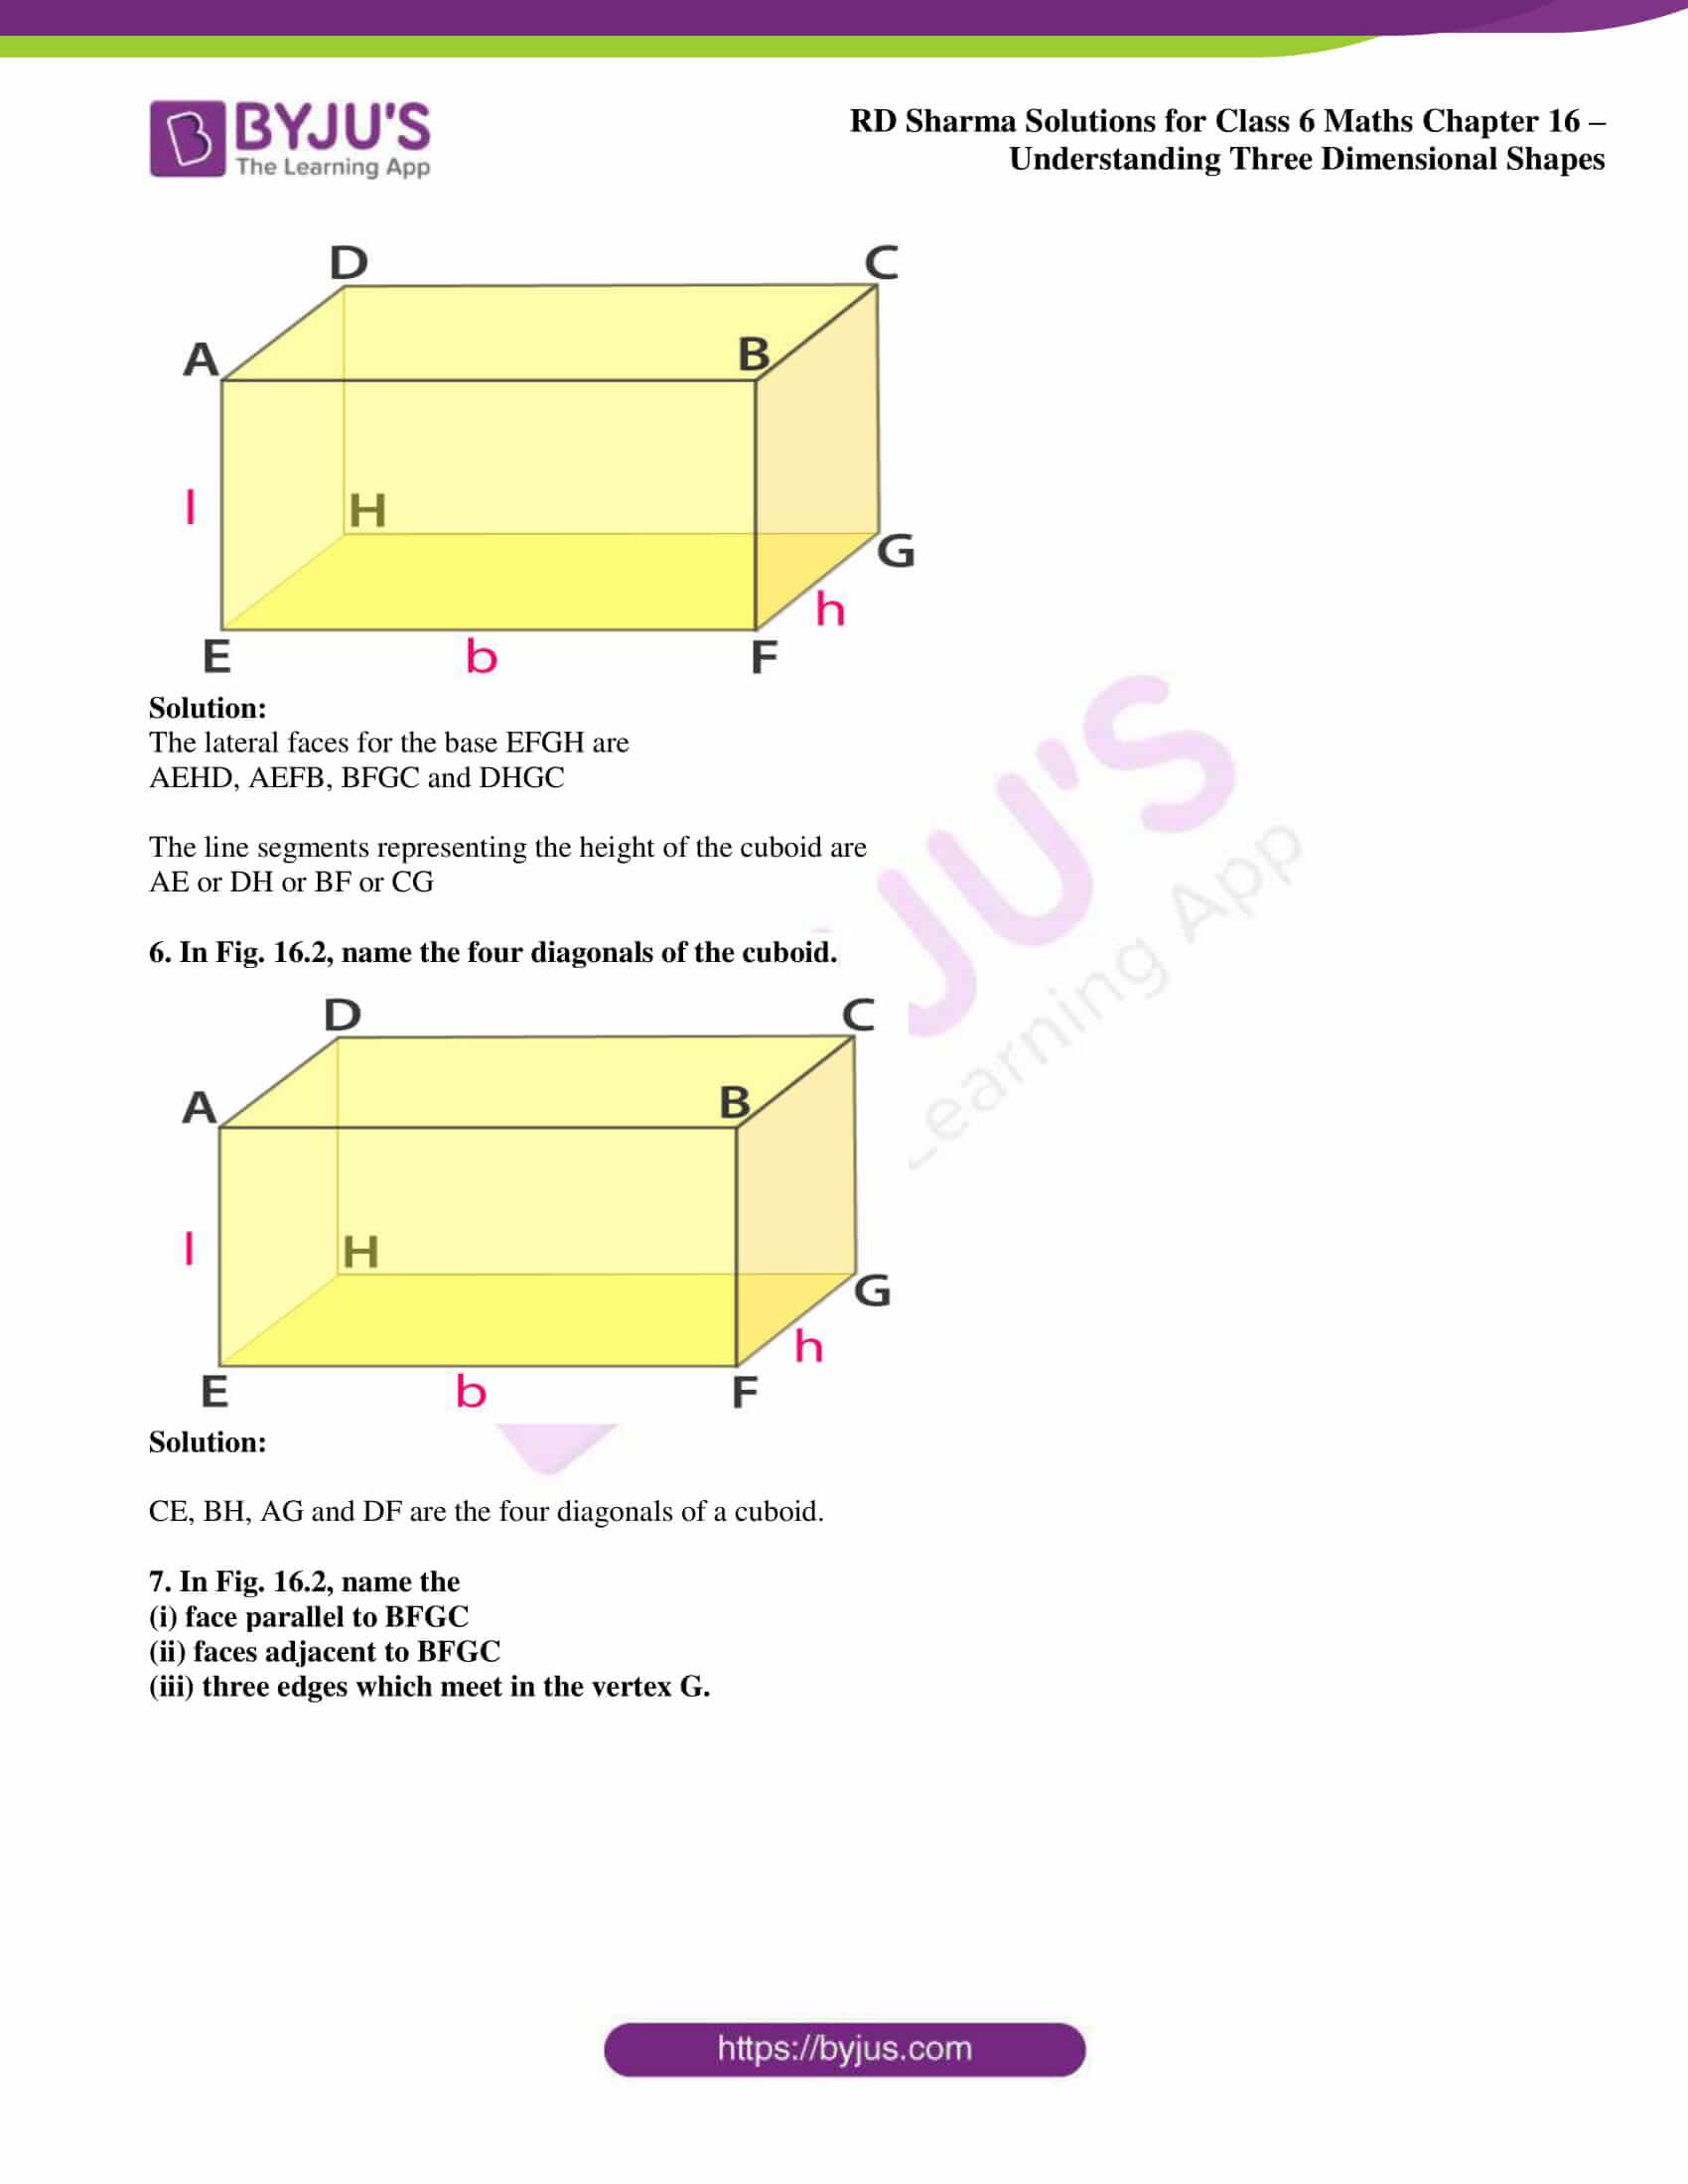 rd sharma solutions nov2020 class 6 maths chapter 16 exercise 1 3